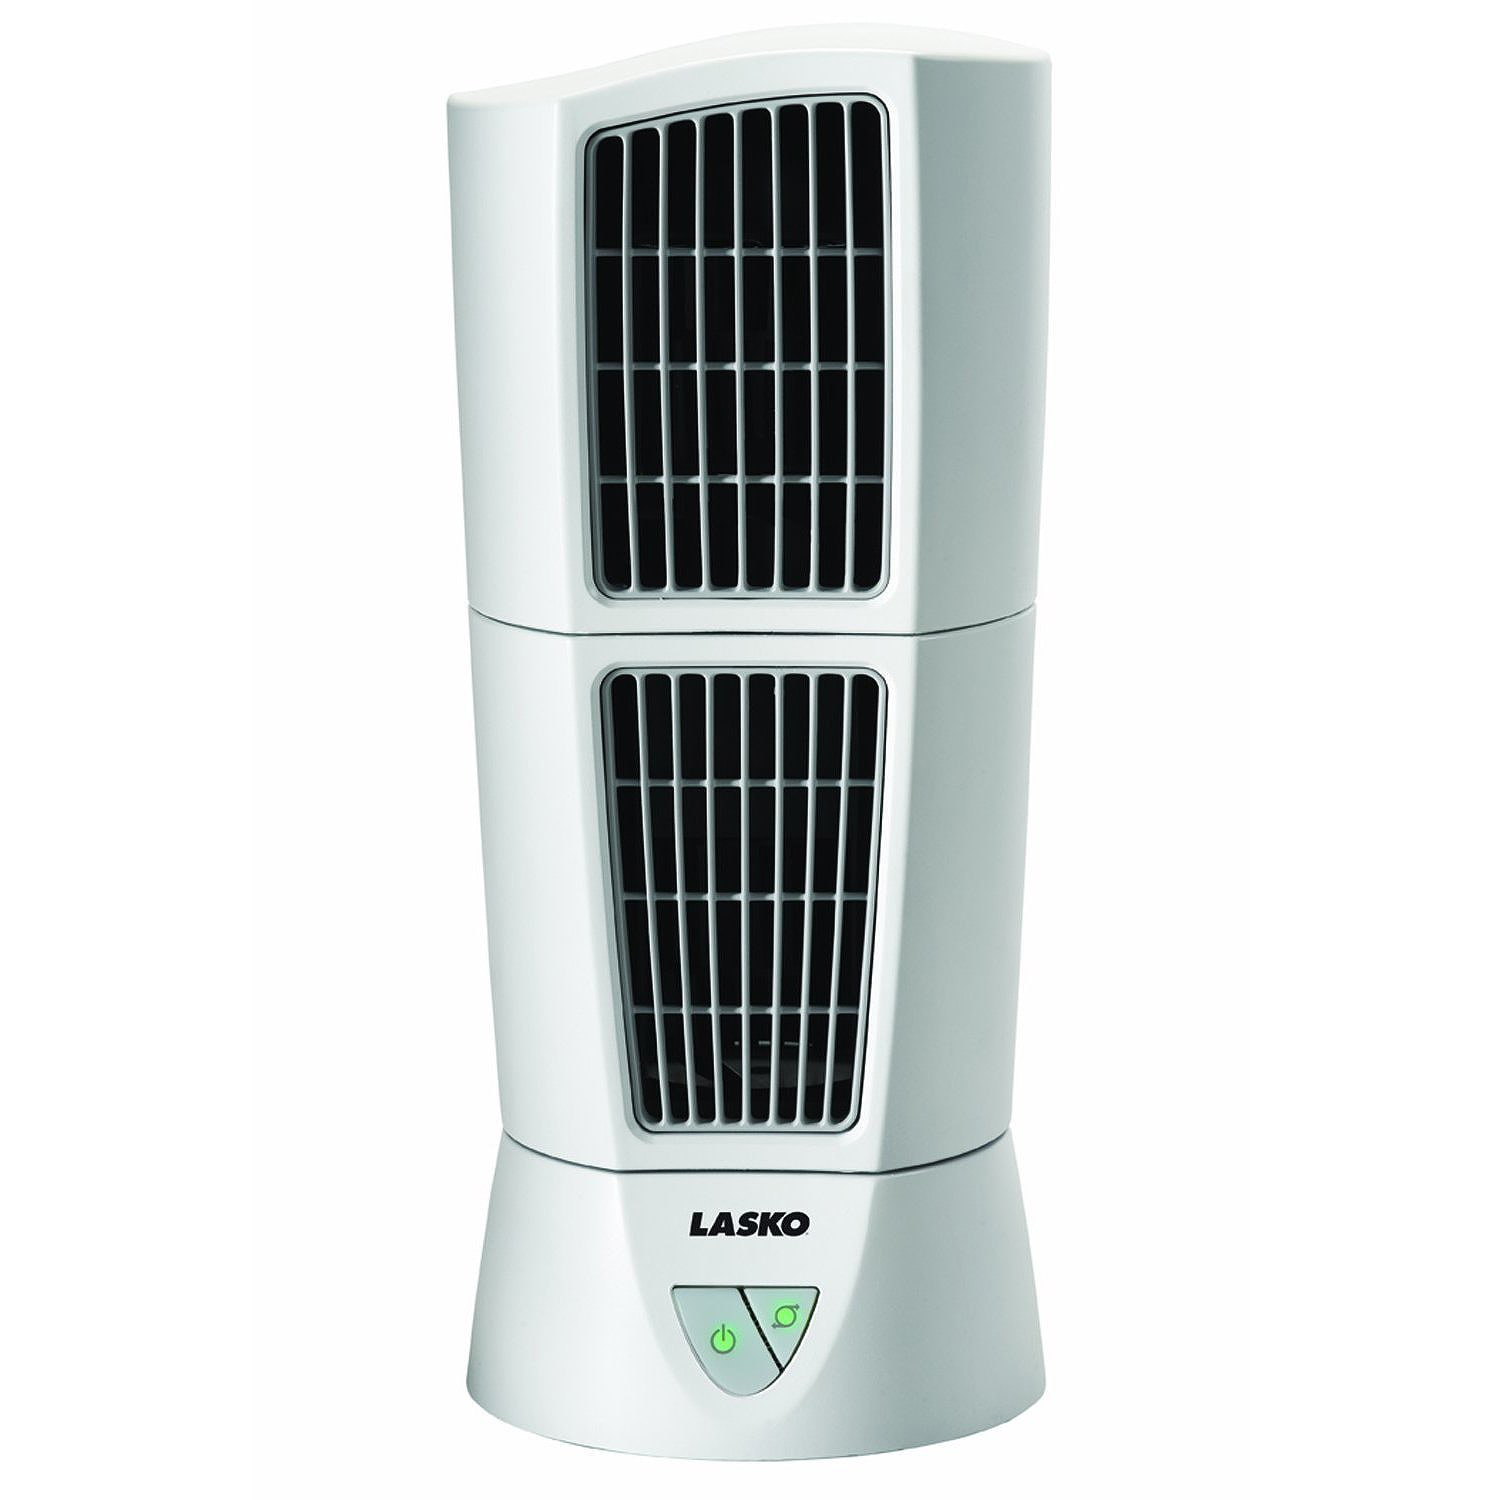 Lasko 4917 Desktop Tower Fan 12683945 Overstock.com Shopping Big  #567565